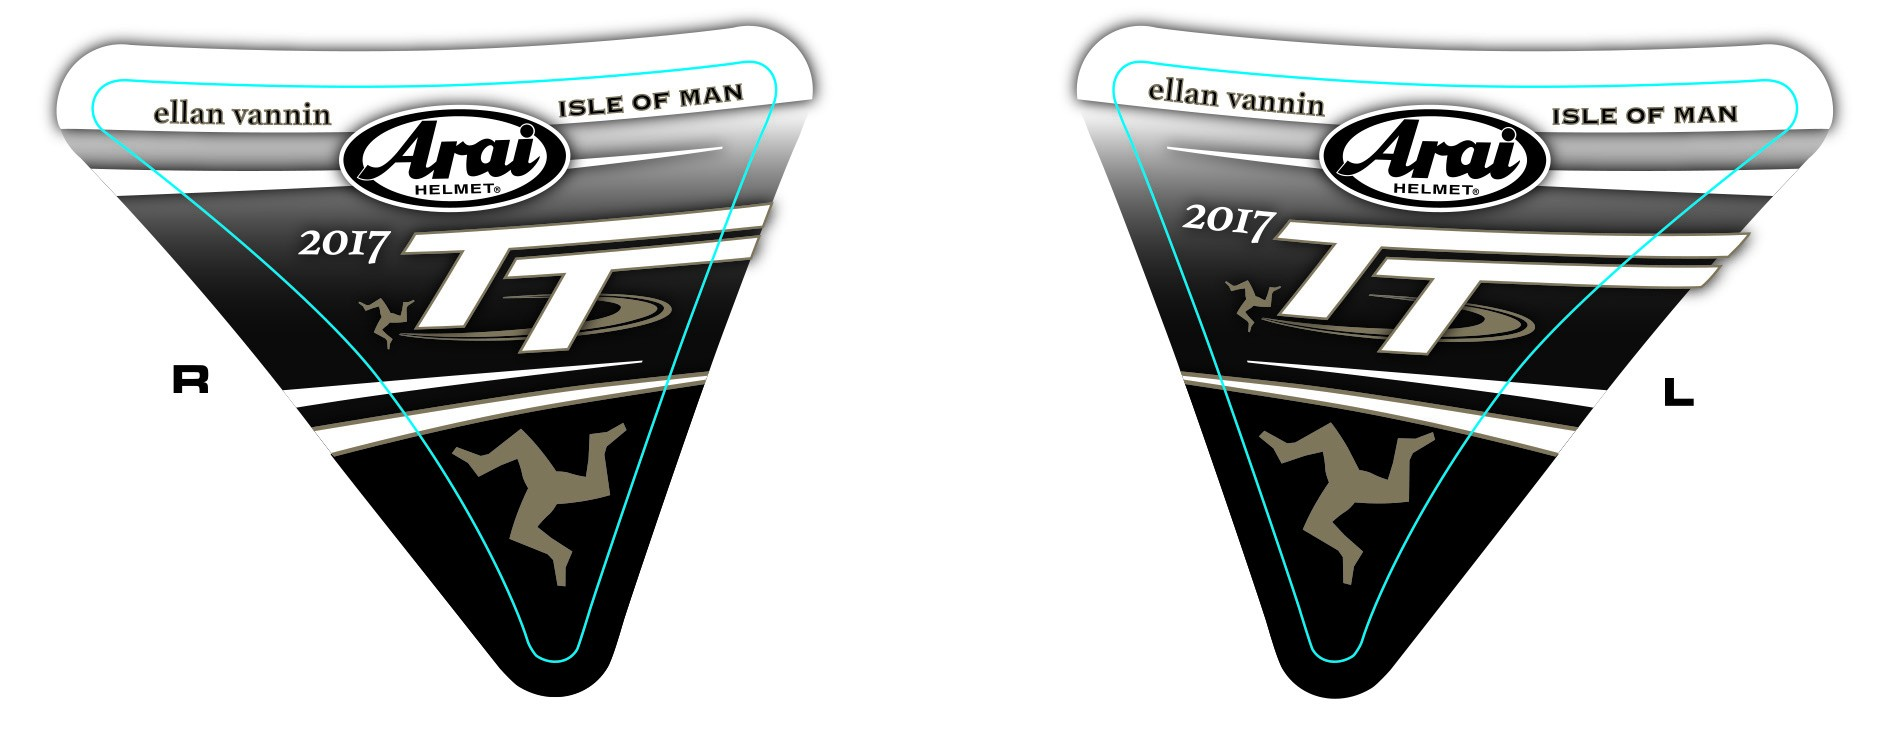 Isle of Man 2017 Visor stickers